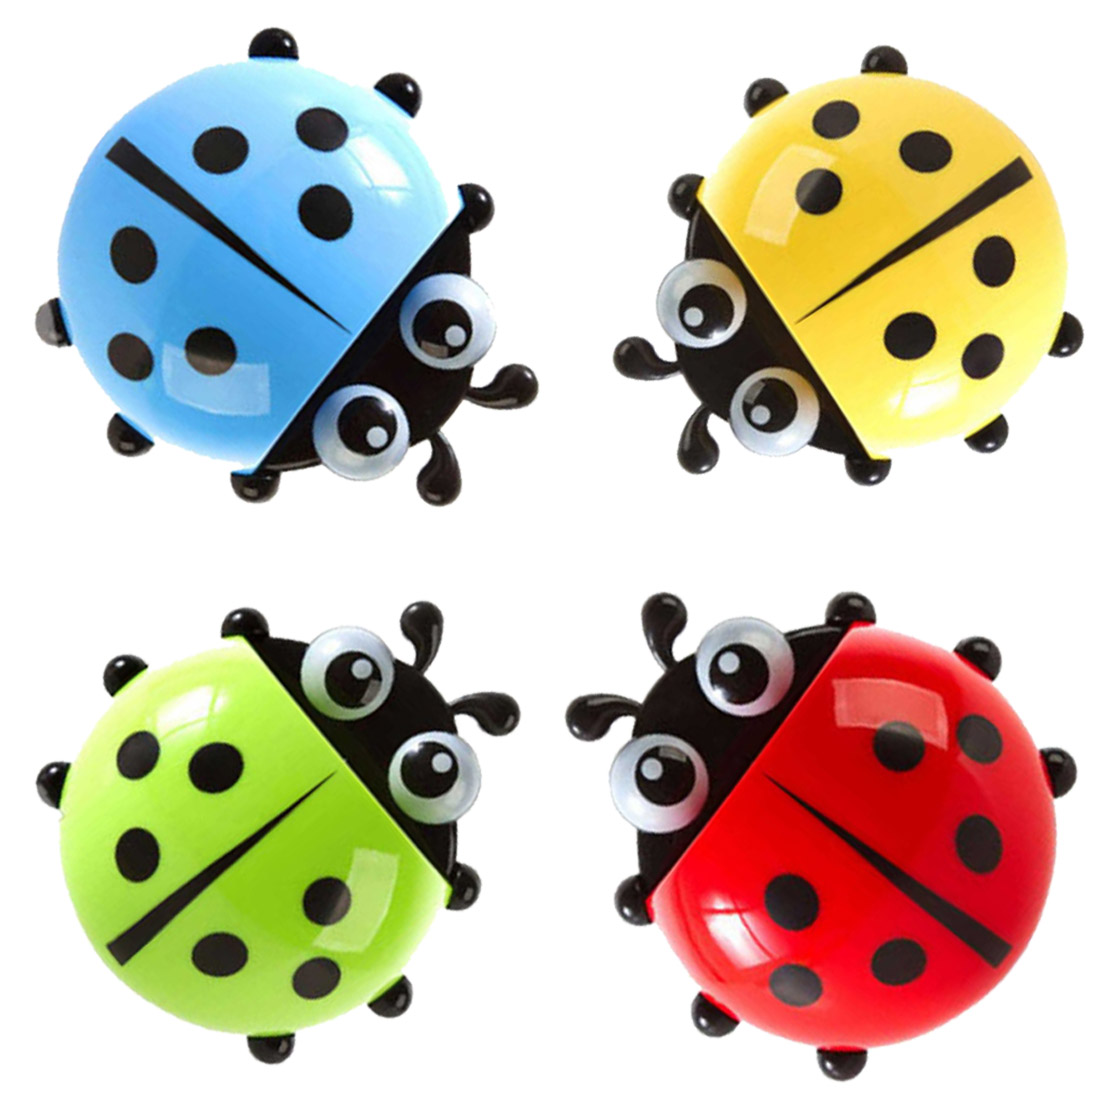 Ladybug Bathroom Accessories Compare Prices On Modern Toothbrush Holder Online Shopping Buy